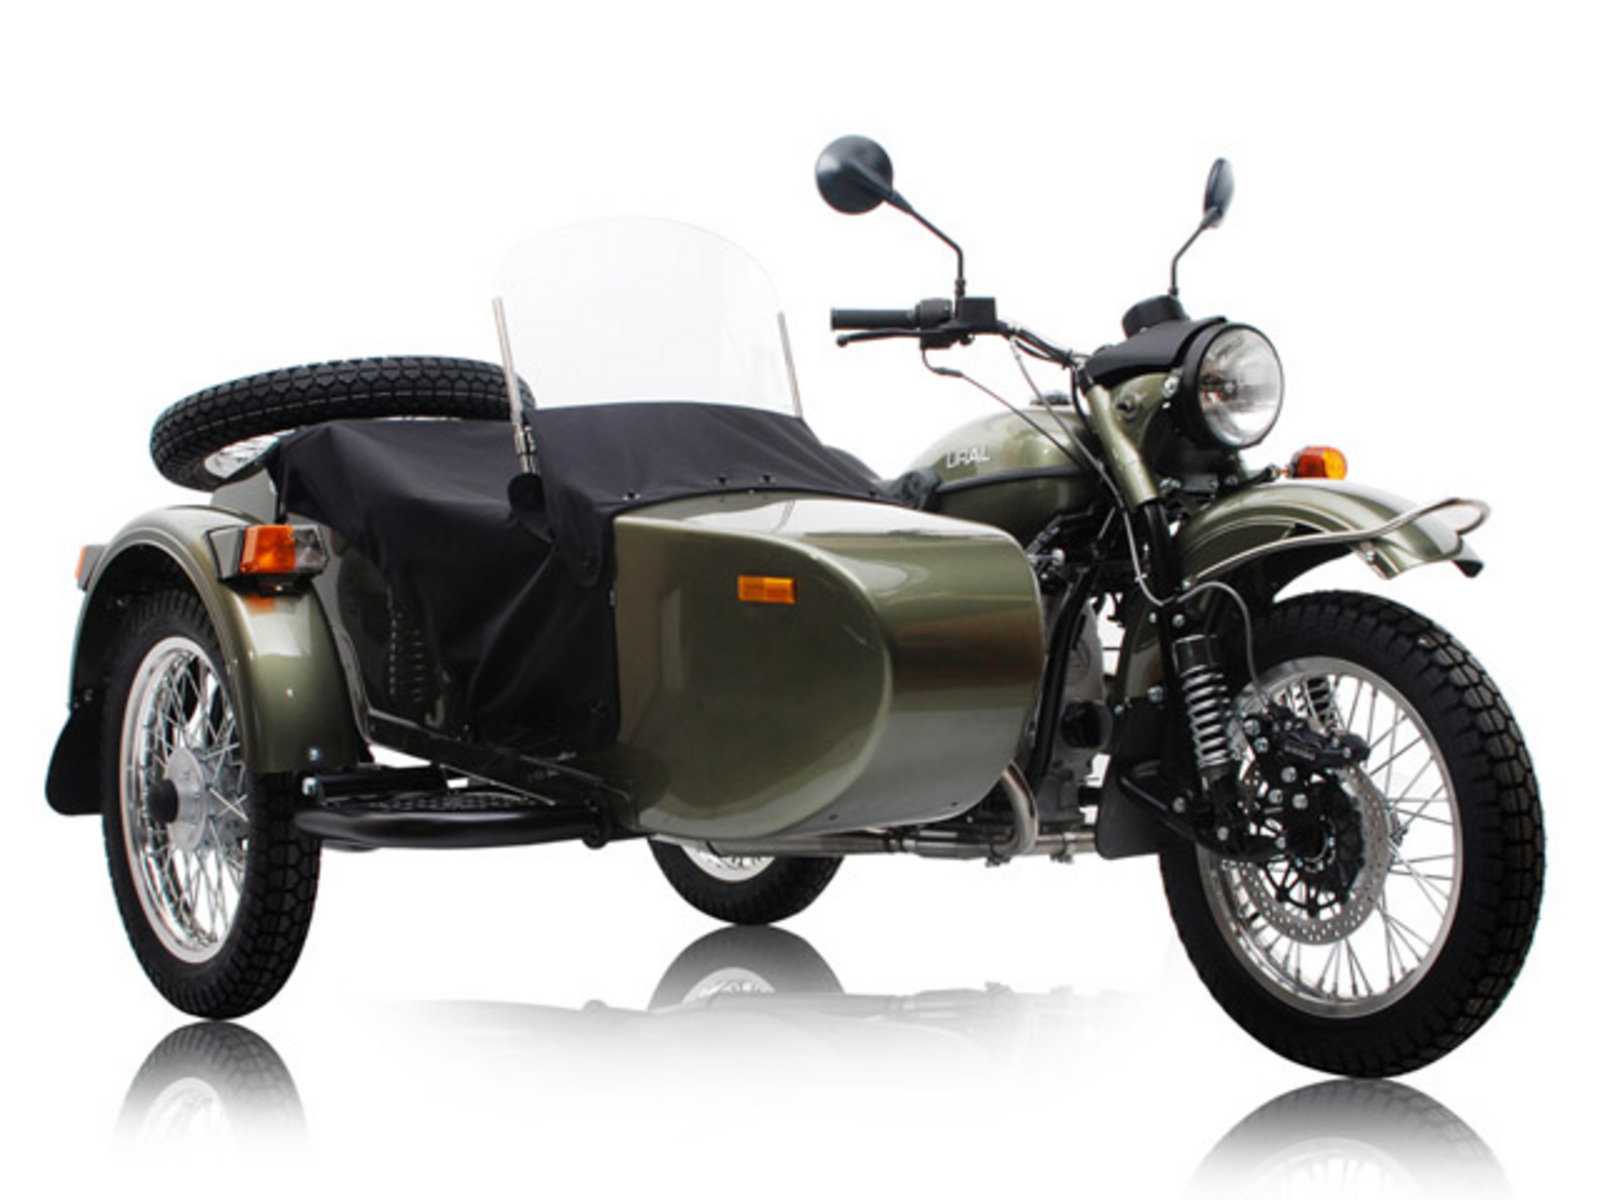 Ural Motorcycles: Models, Prices, Reviews, News, Specifications